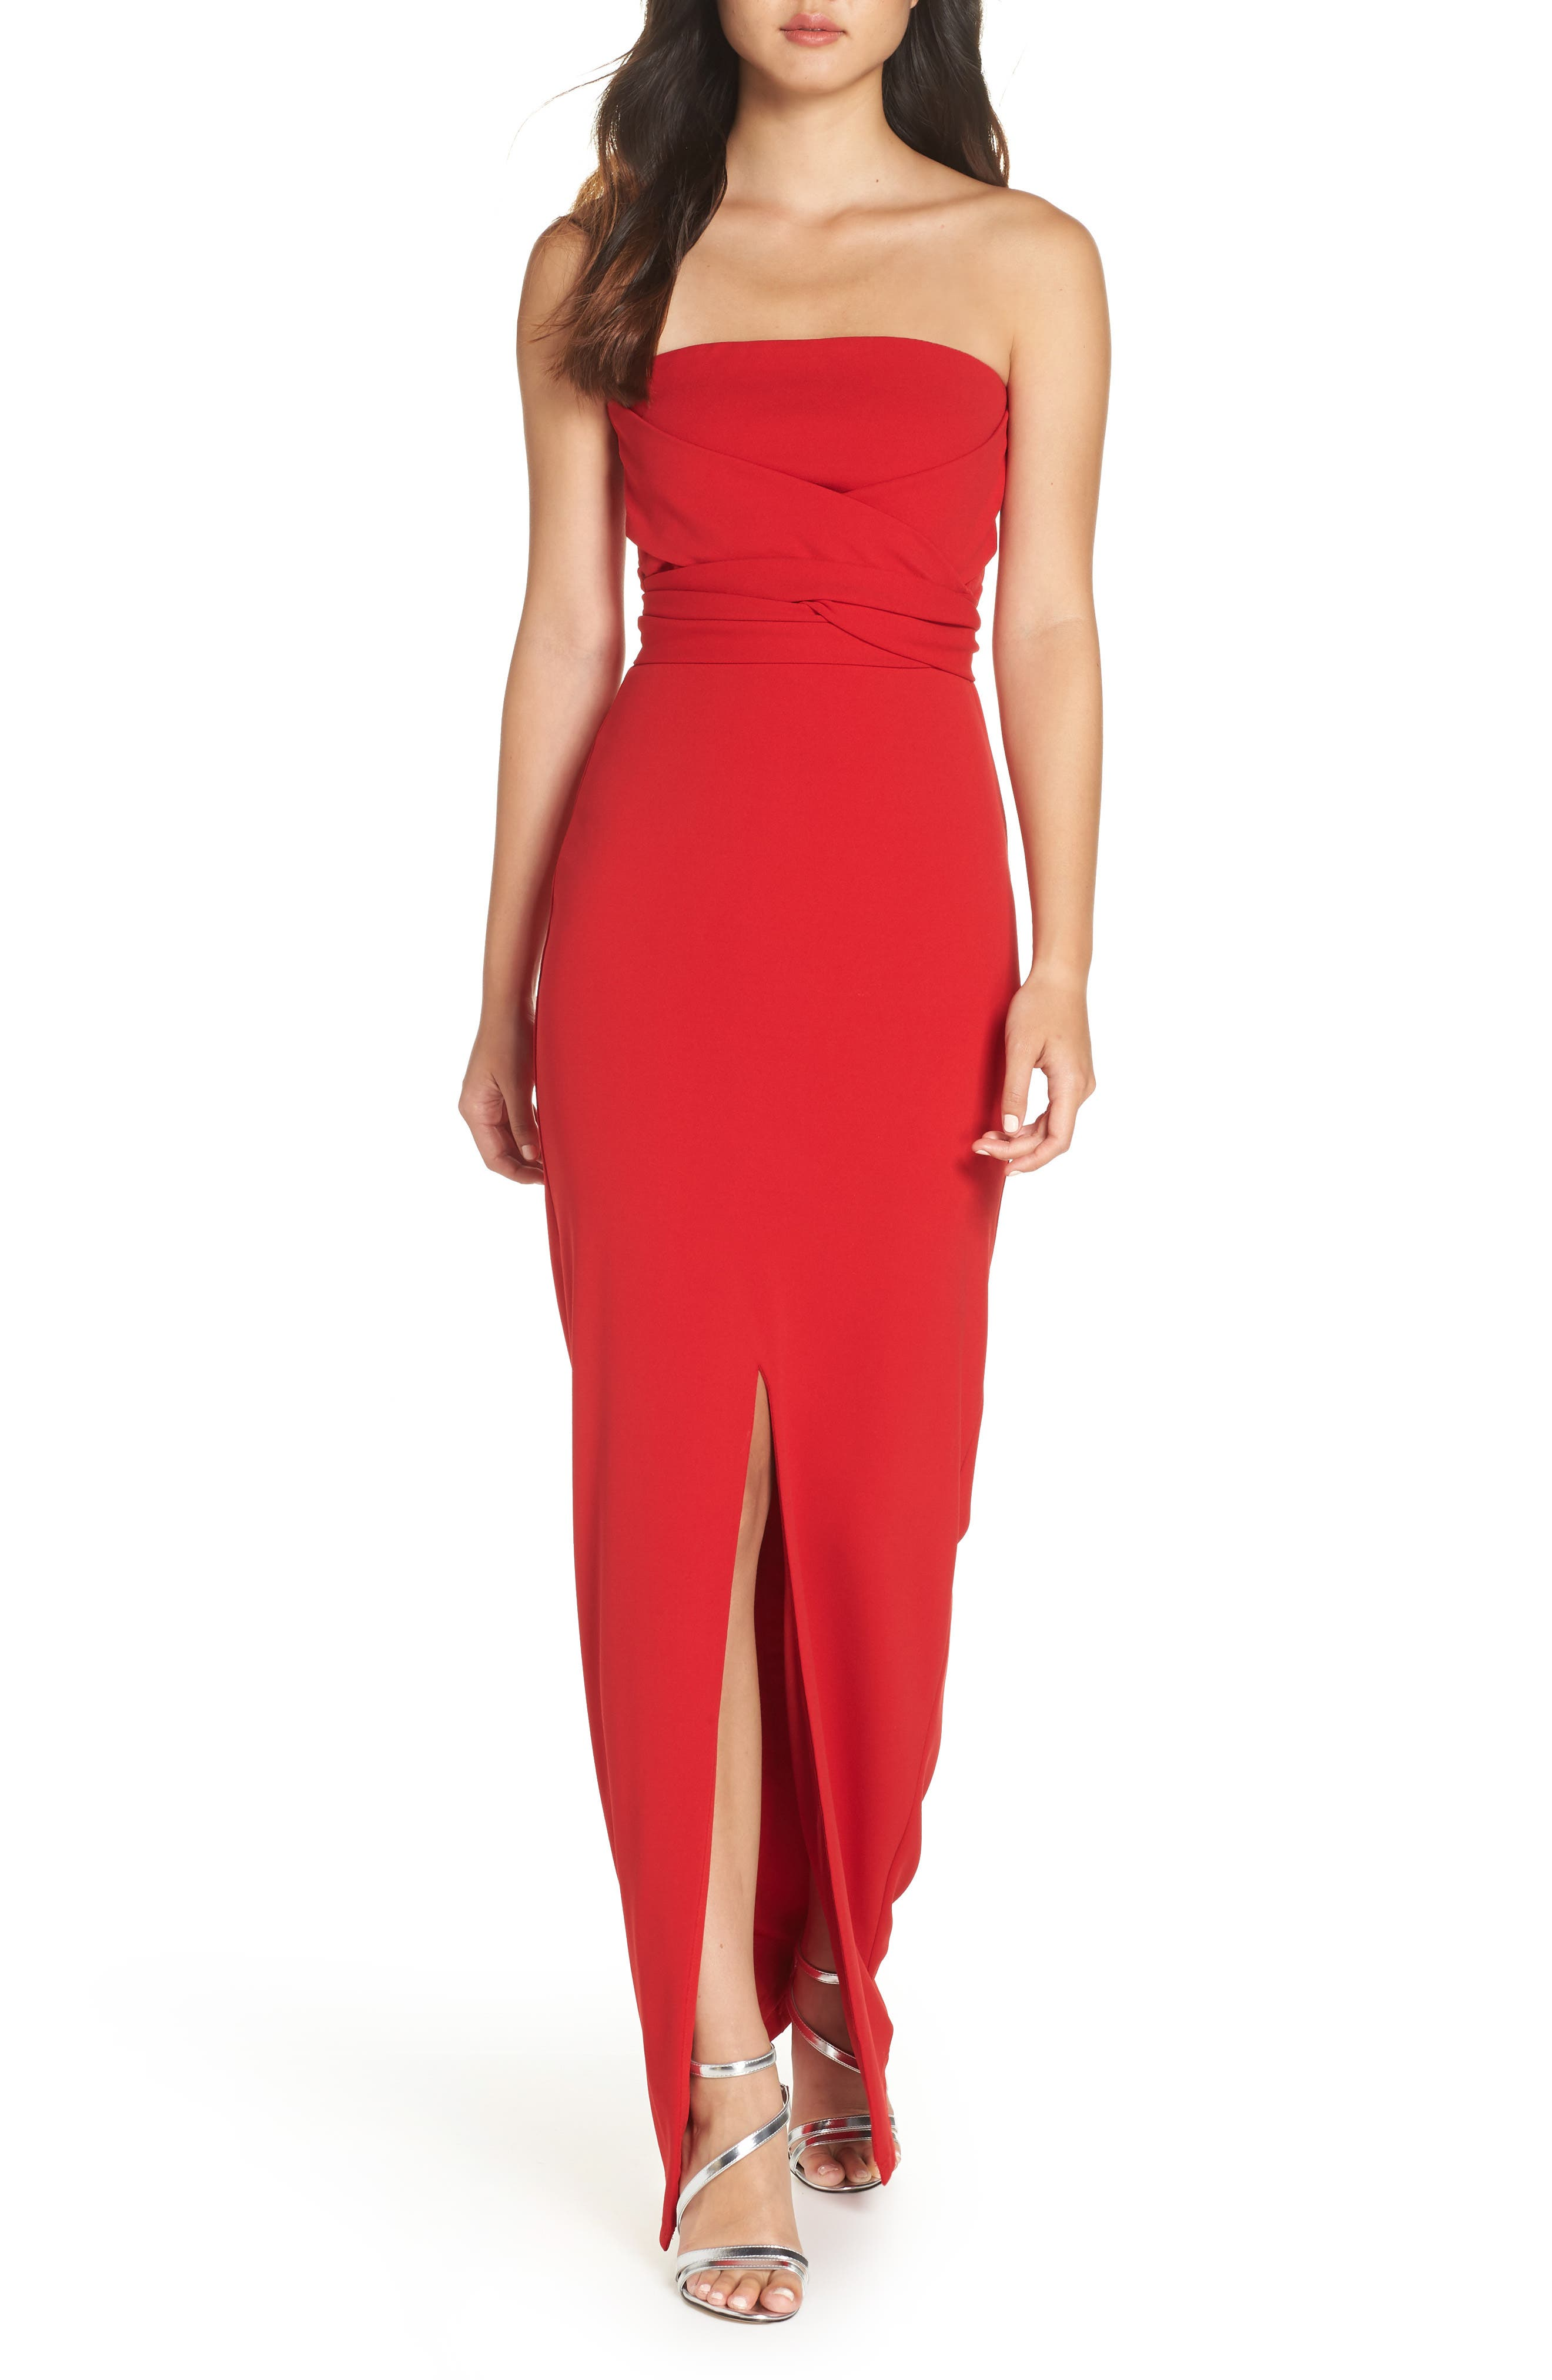 Lulus Own The Night Strapless Maxi Dress, Red